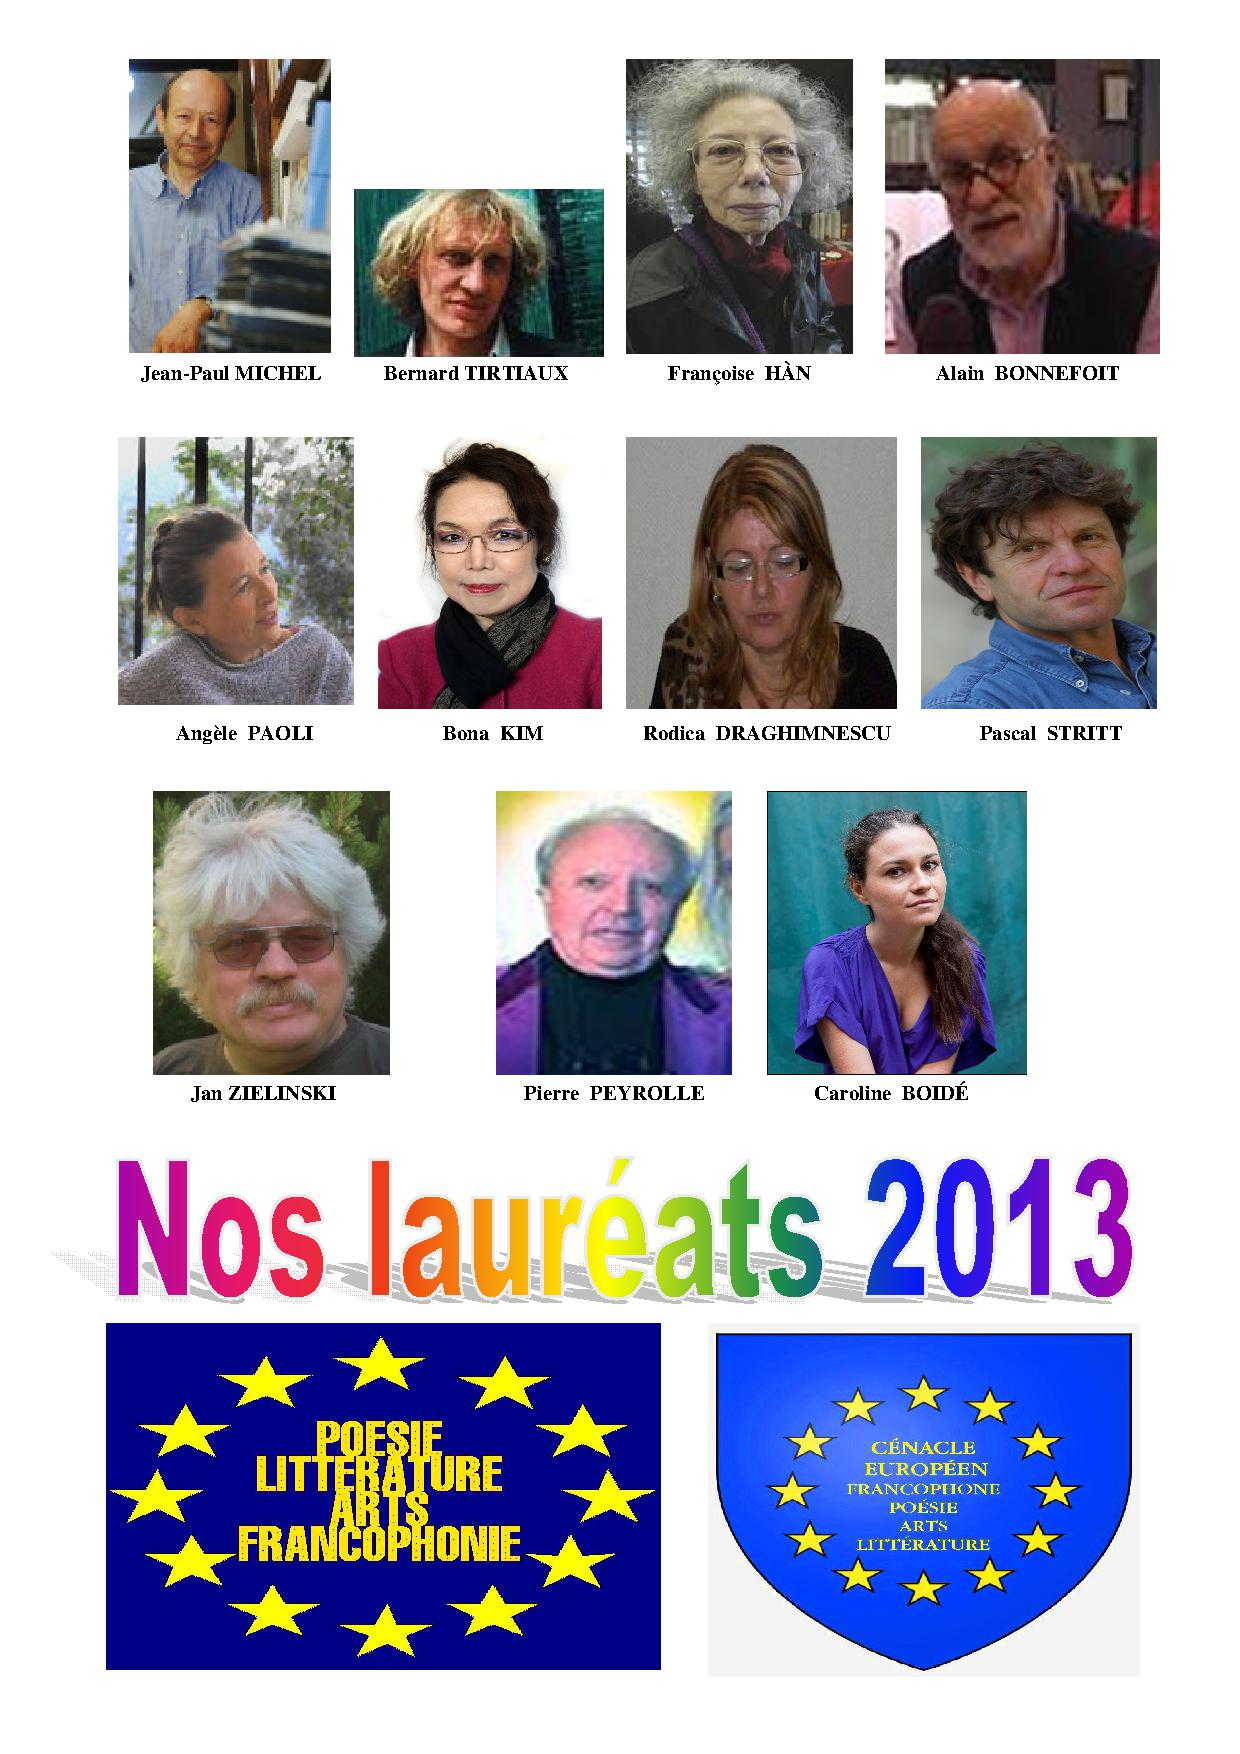 Nos lauréats 2013 (photos)